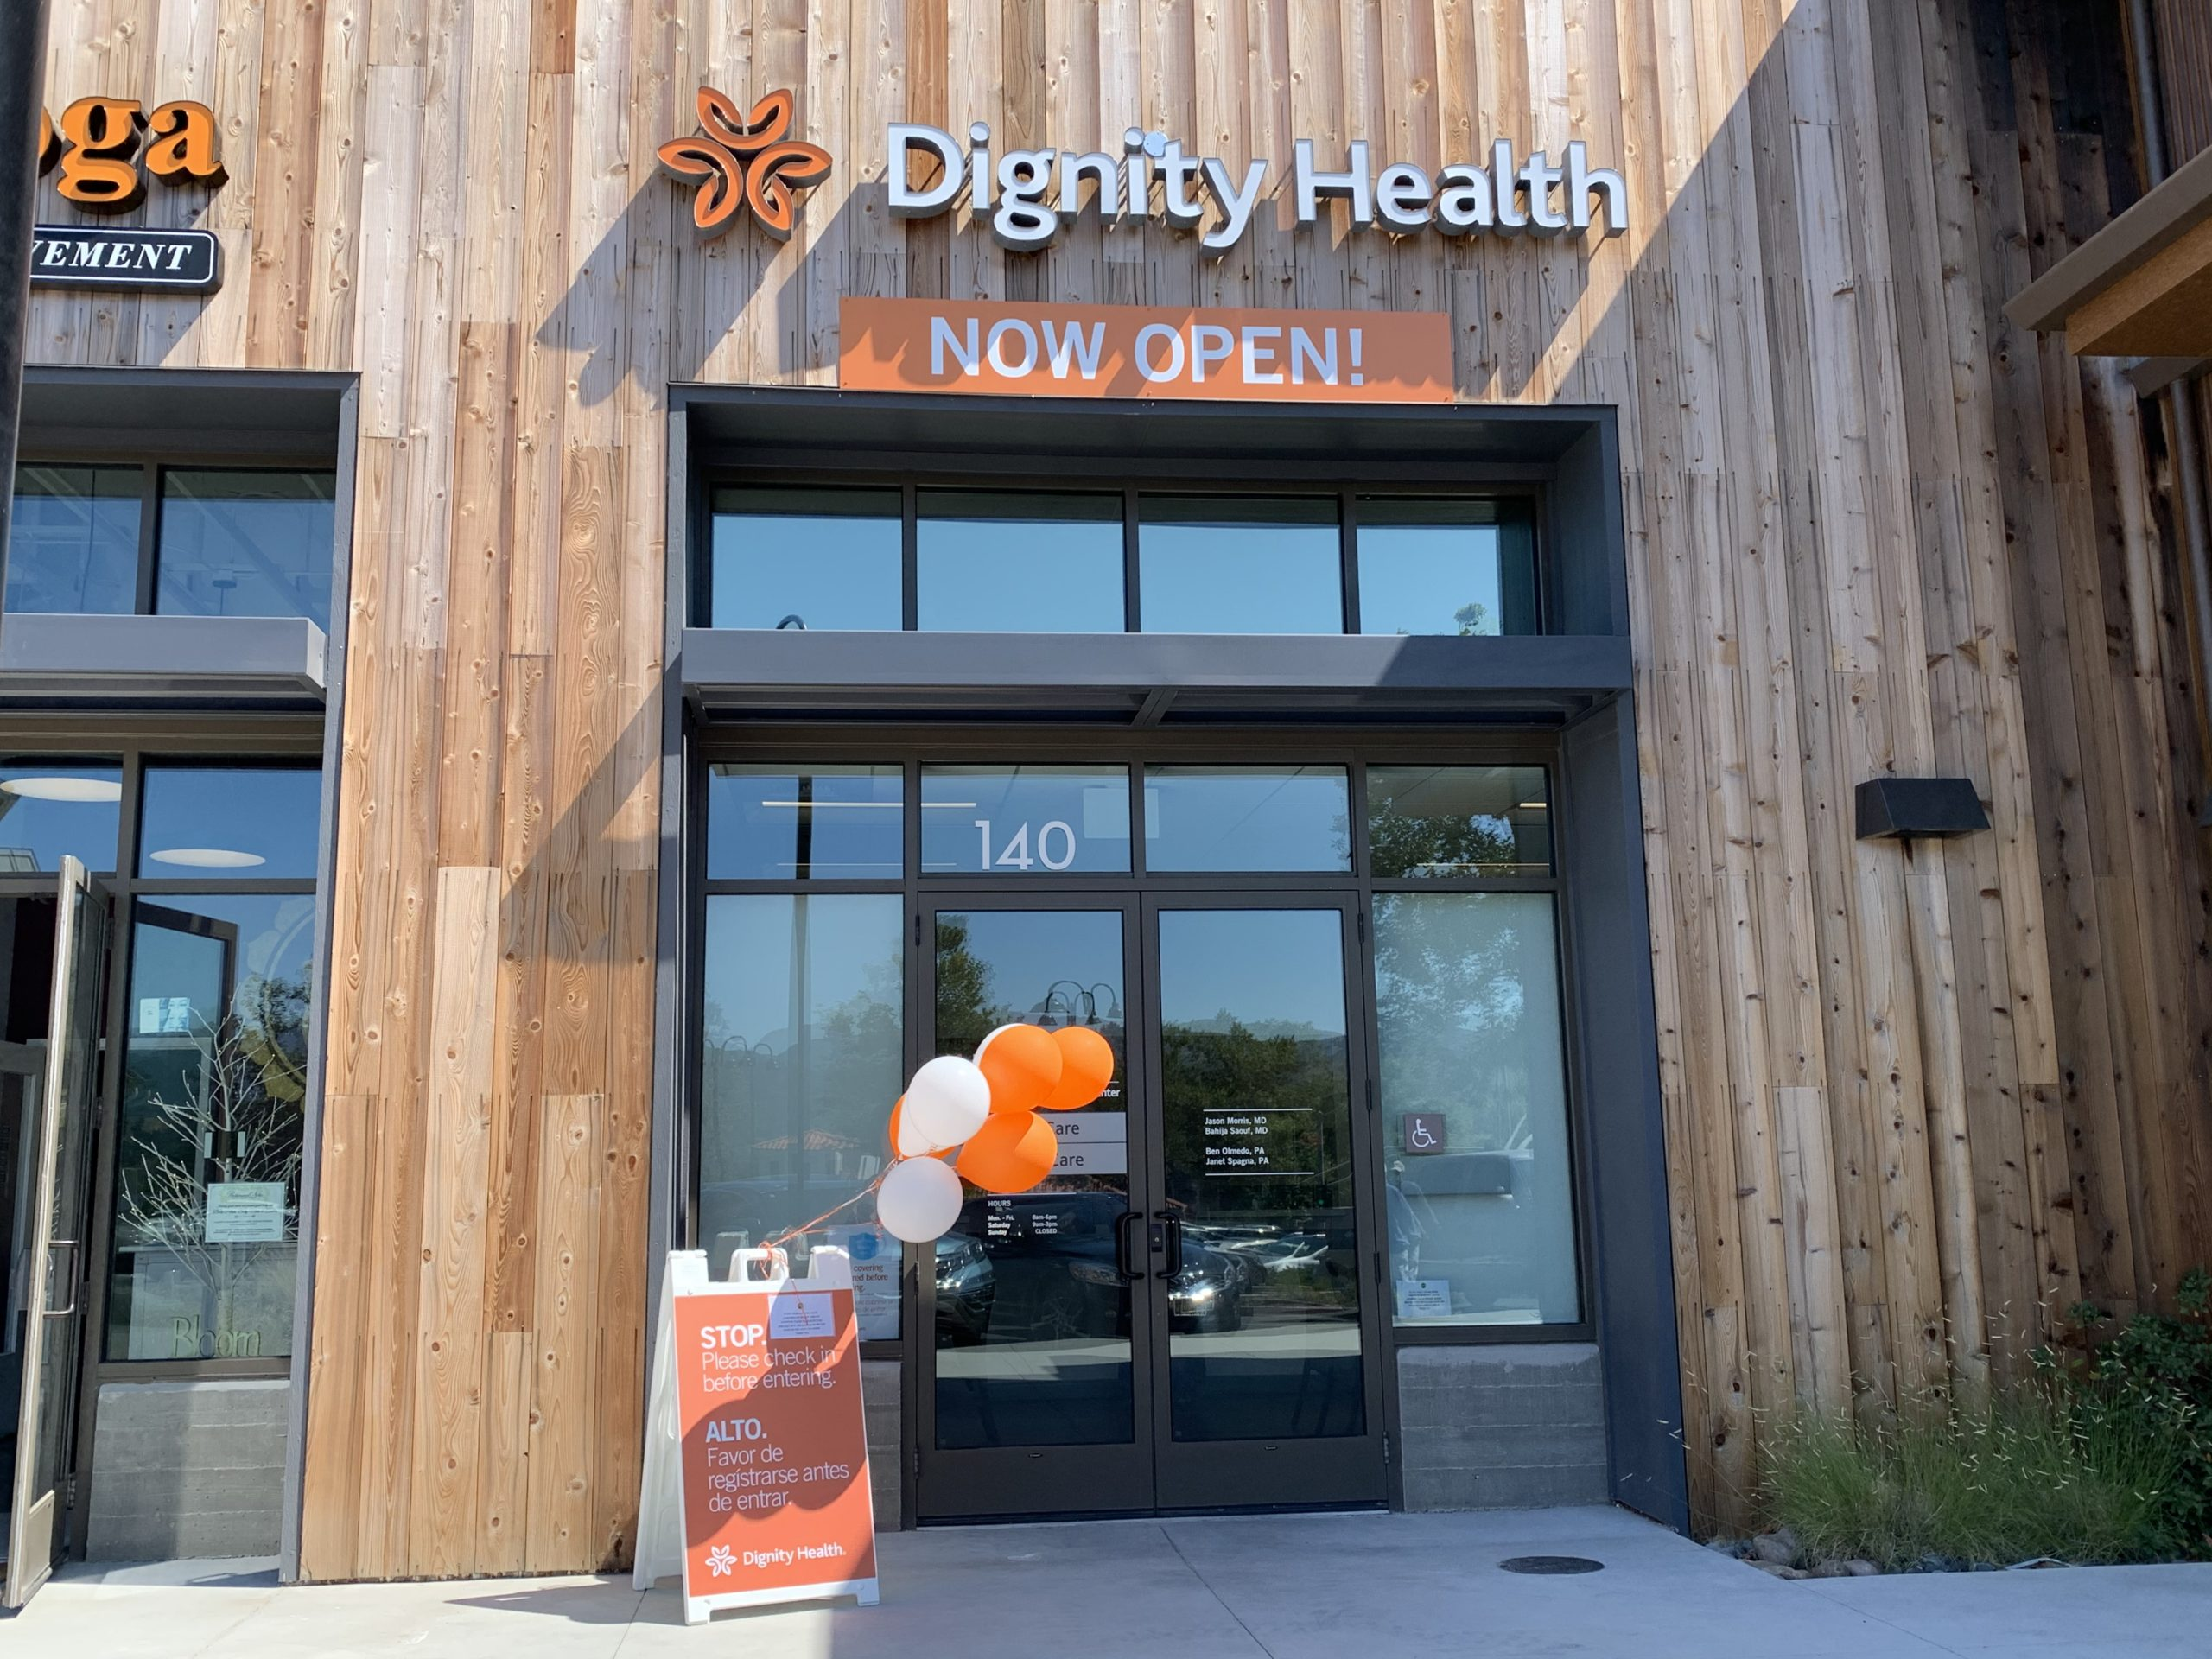 New Dignity Health Urgent Care center opens in Solvang ...